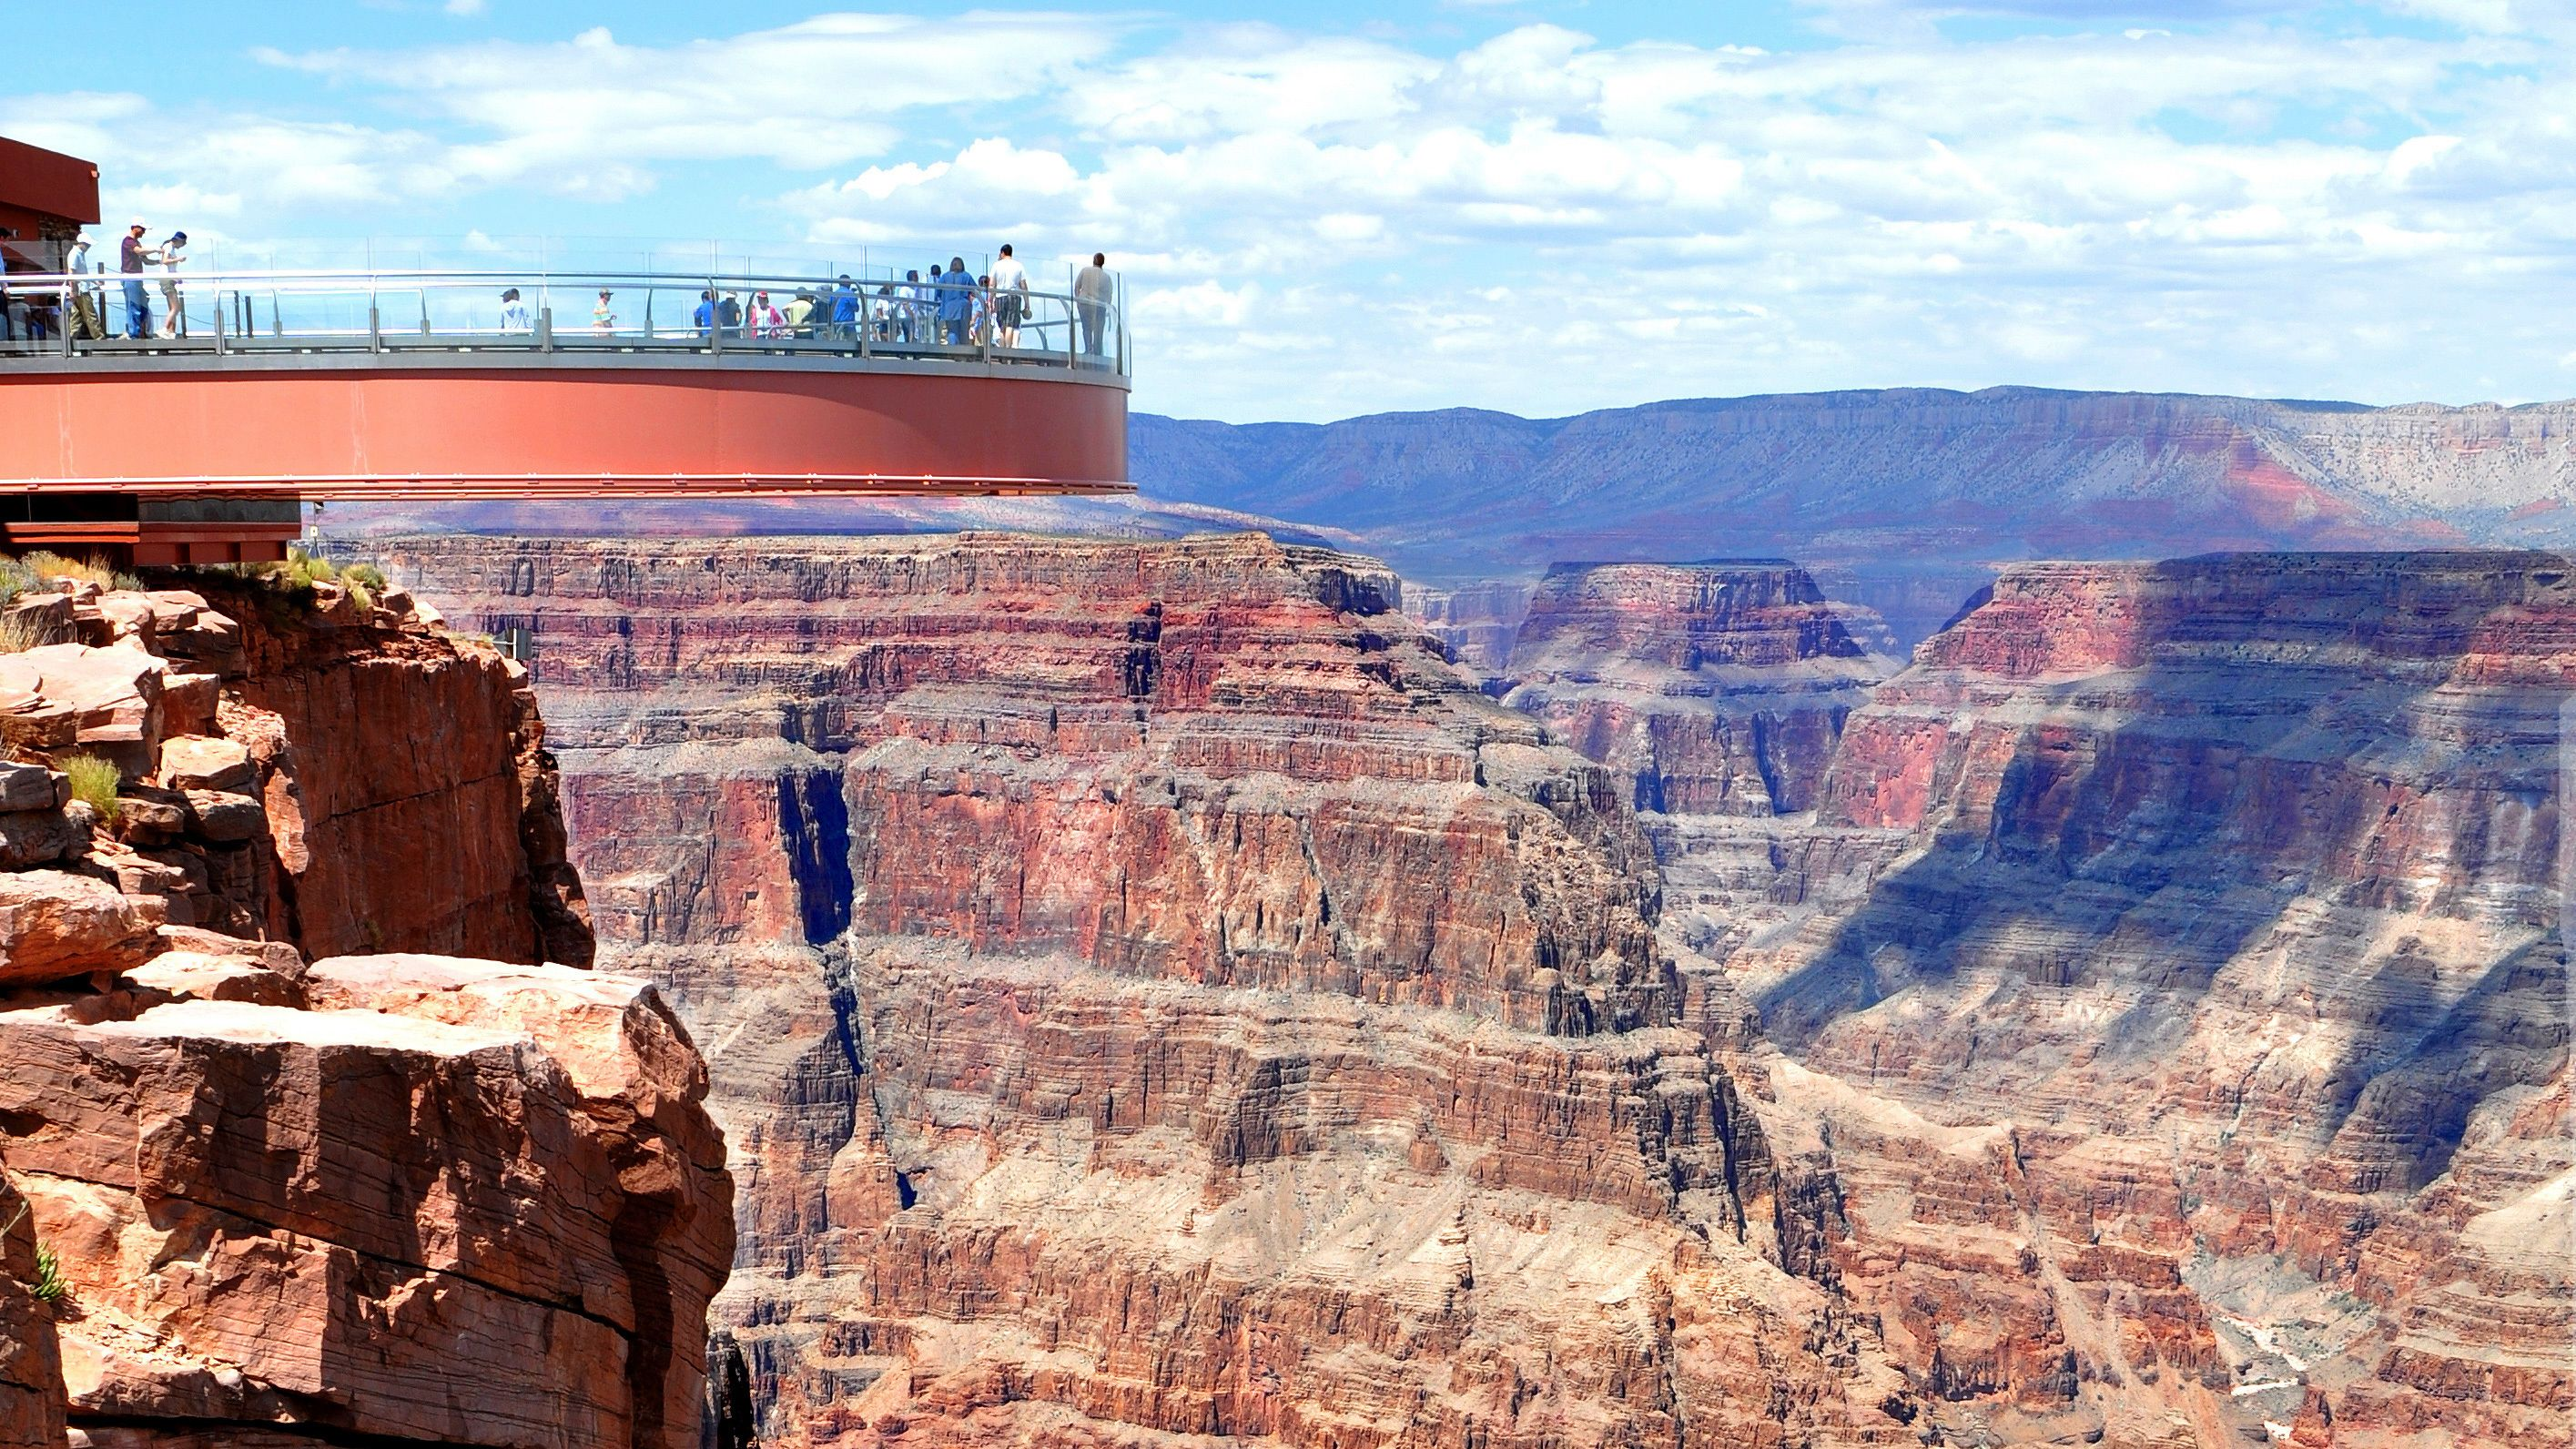 Grand Canyon Skywalk offers a once in a lifetime view down the canyon walls